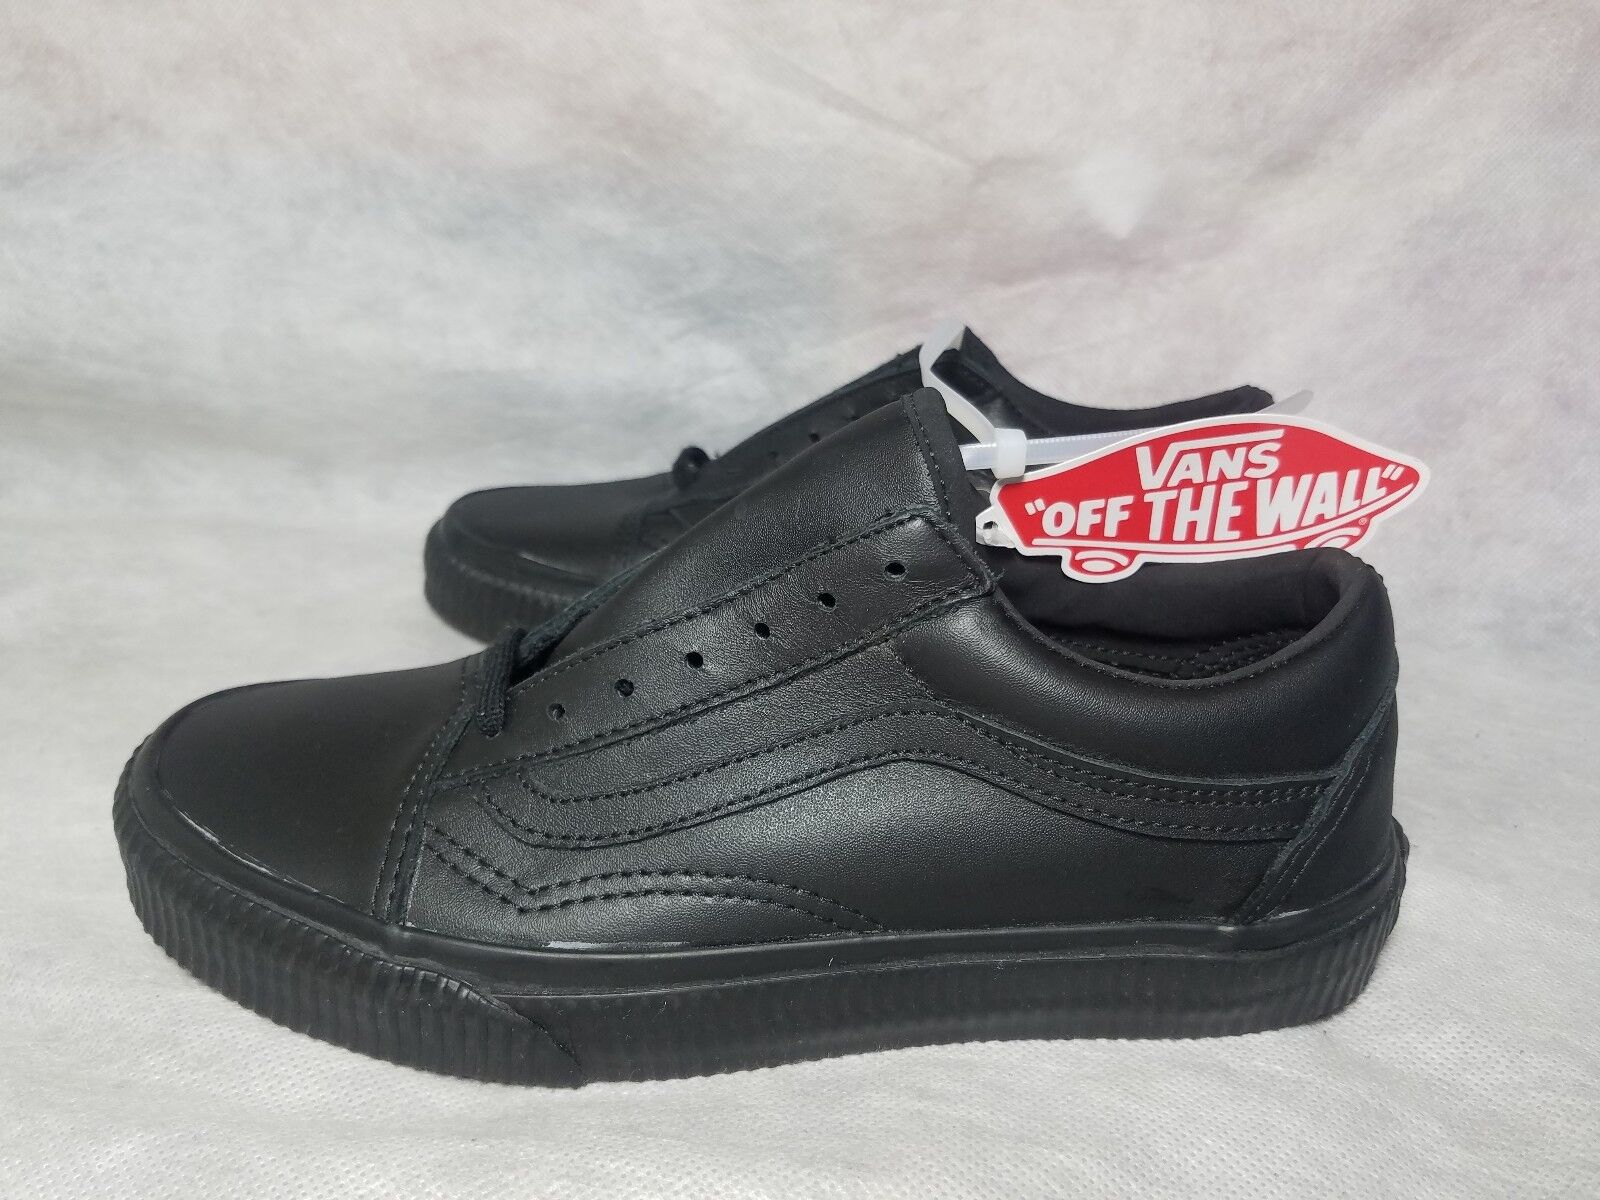 New Vans Old Skool Leather Embossed Shoe Sidewall Black Vault Skate Shoe Embossed Women Size 6 41e31b